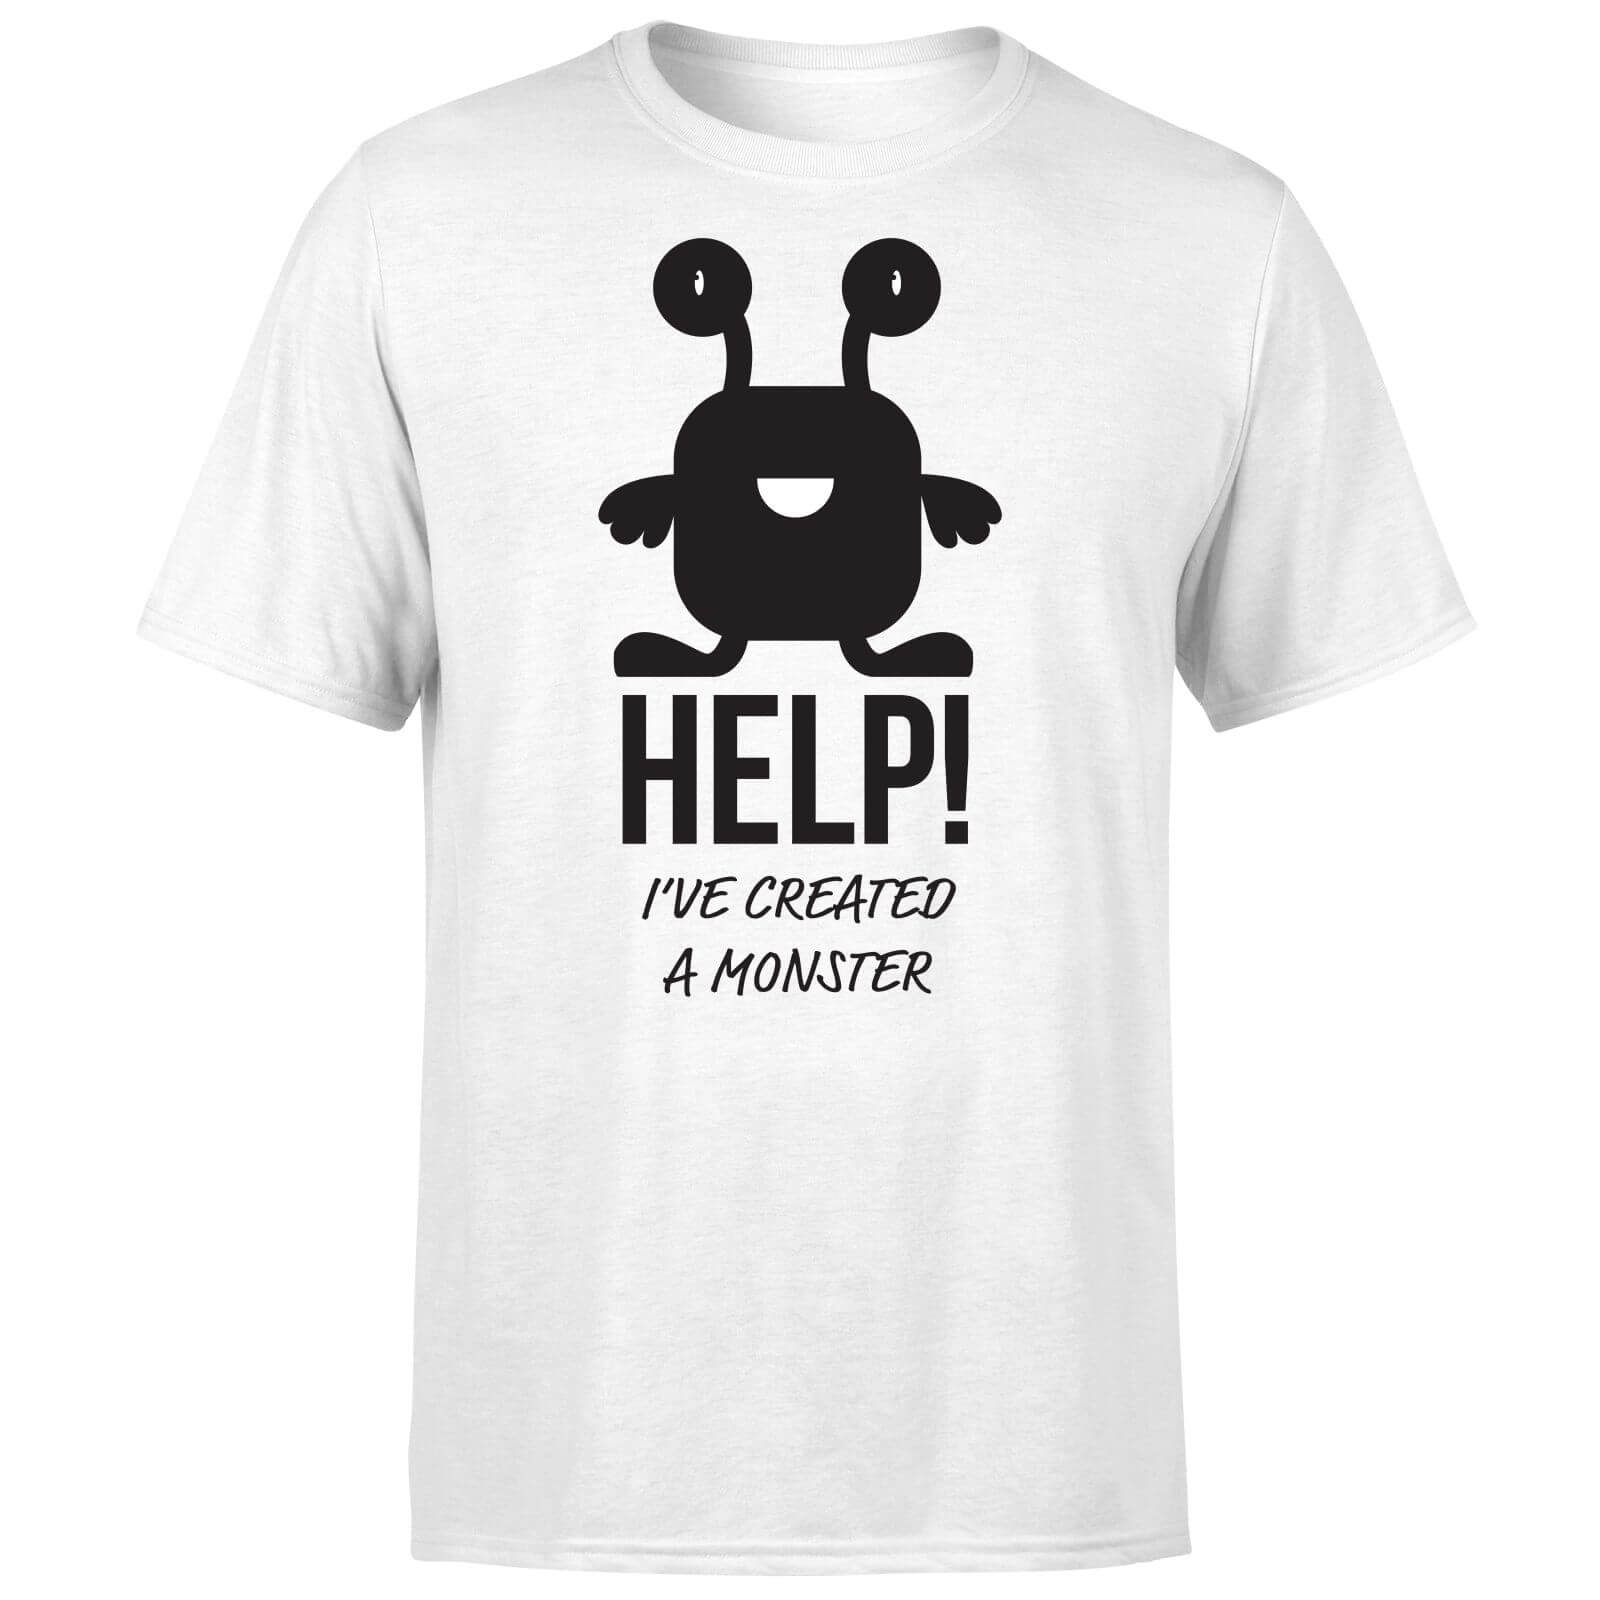 HELP Ive Created a Monster T-Shirt - White